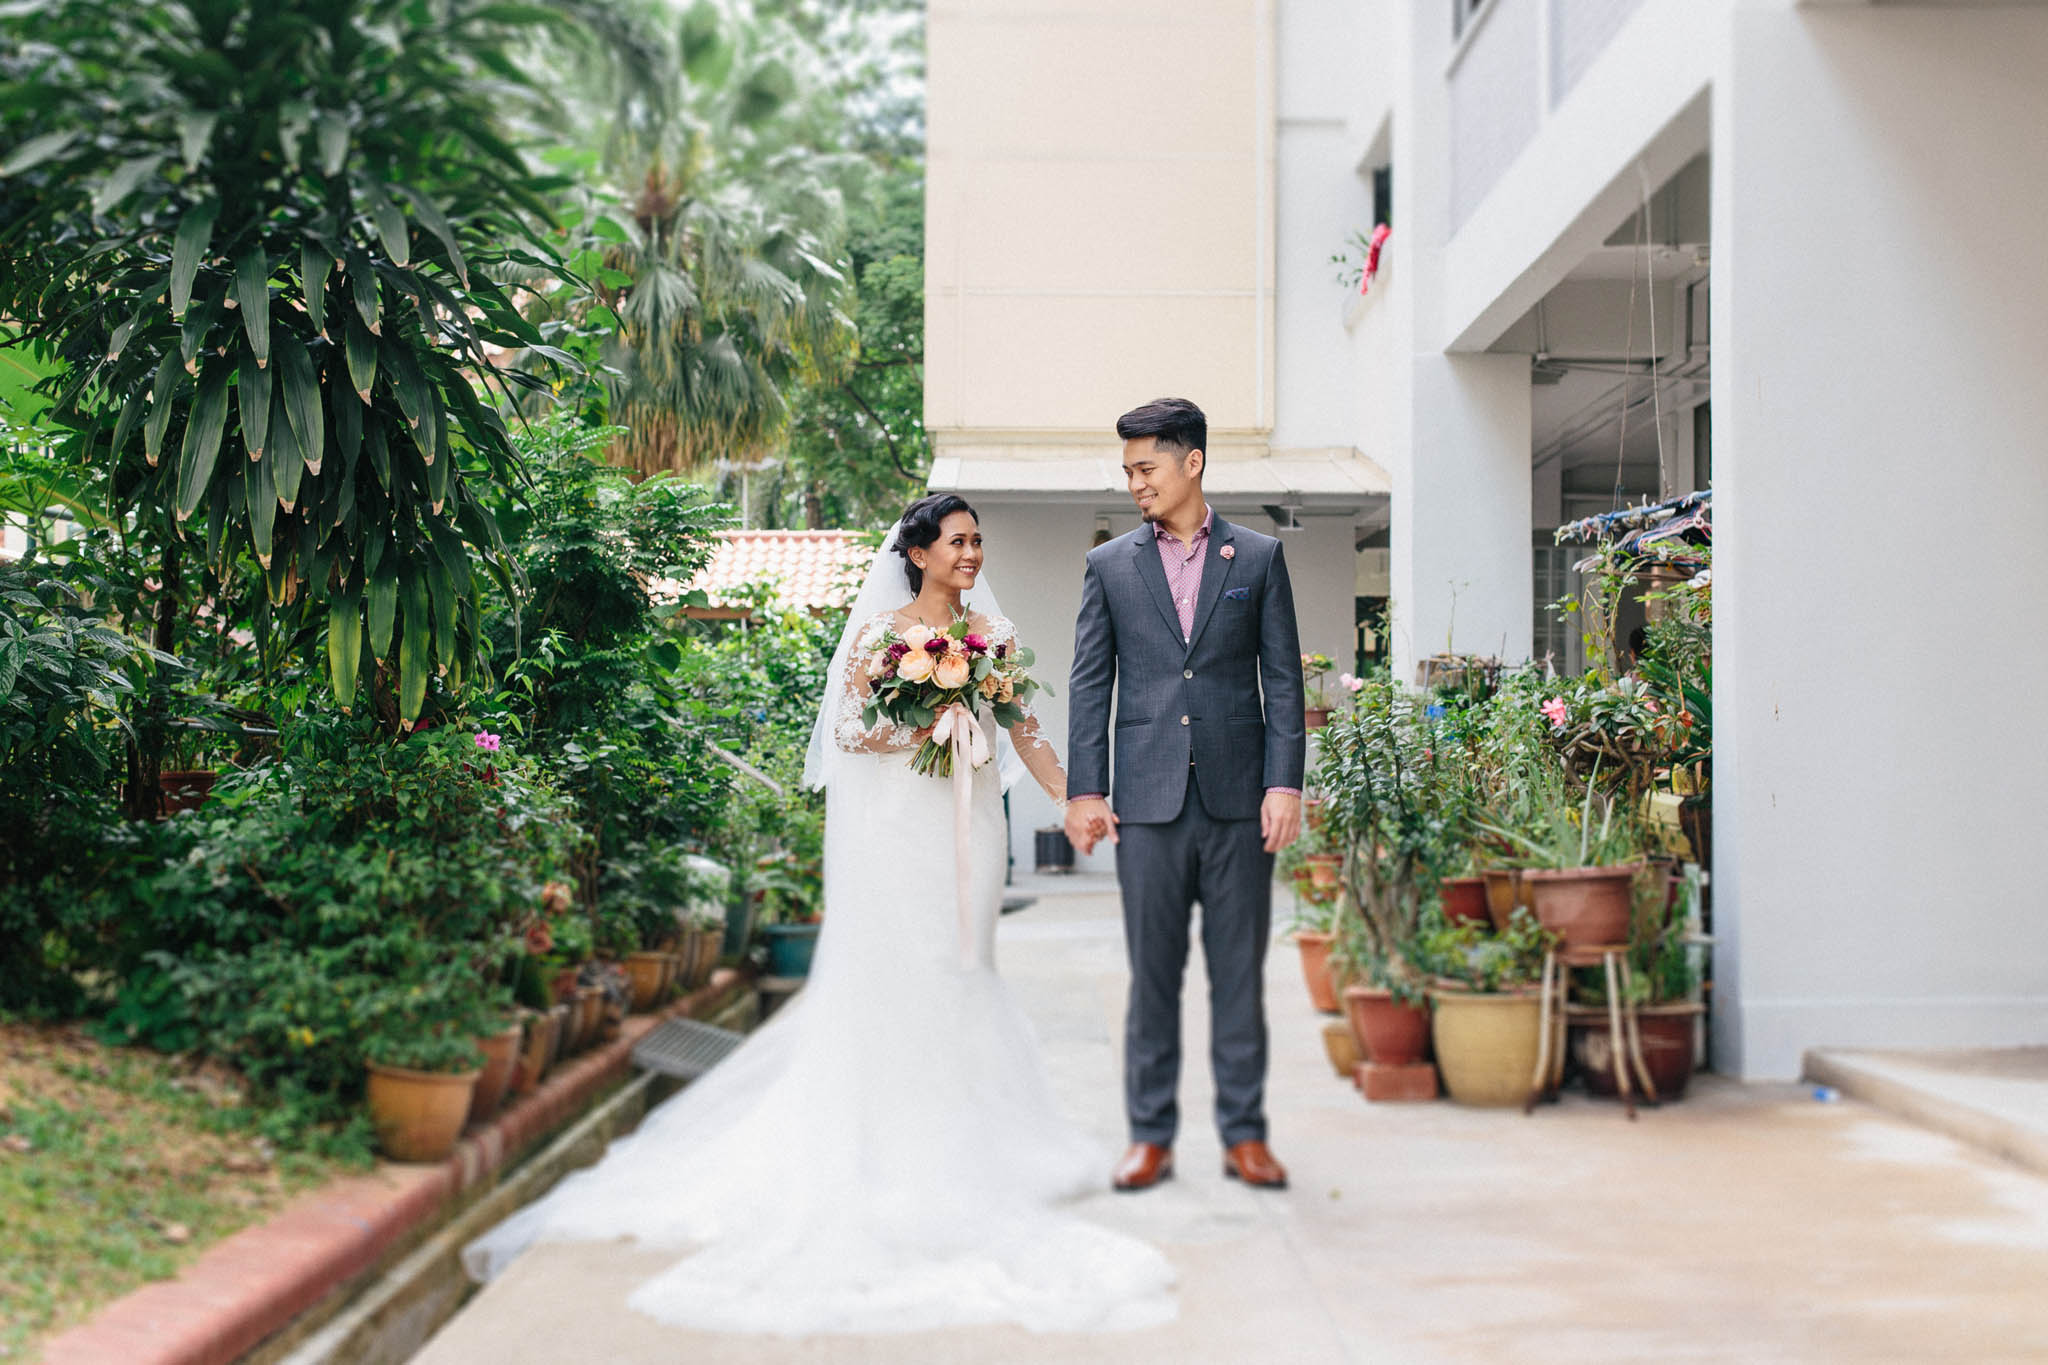 singapore-wedding-photographer-wedding-hafiana-teck-kuan-031.jpg